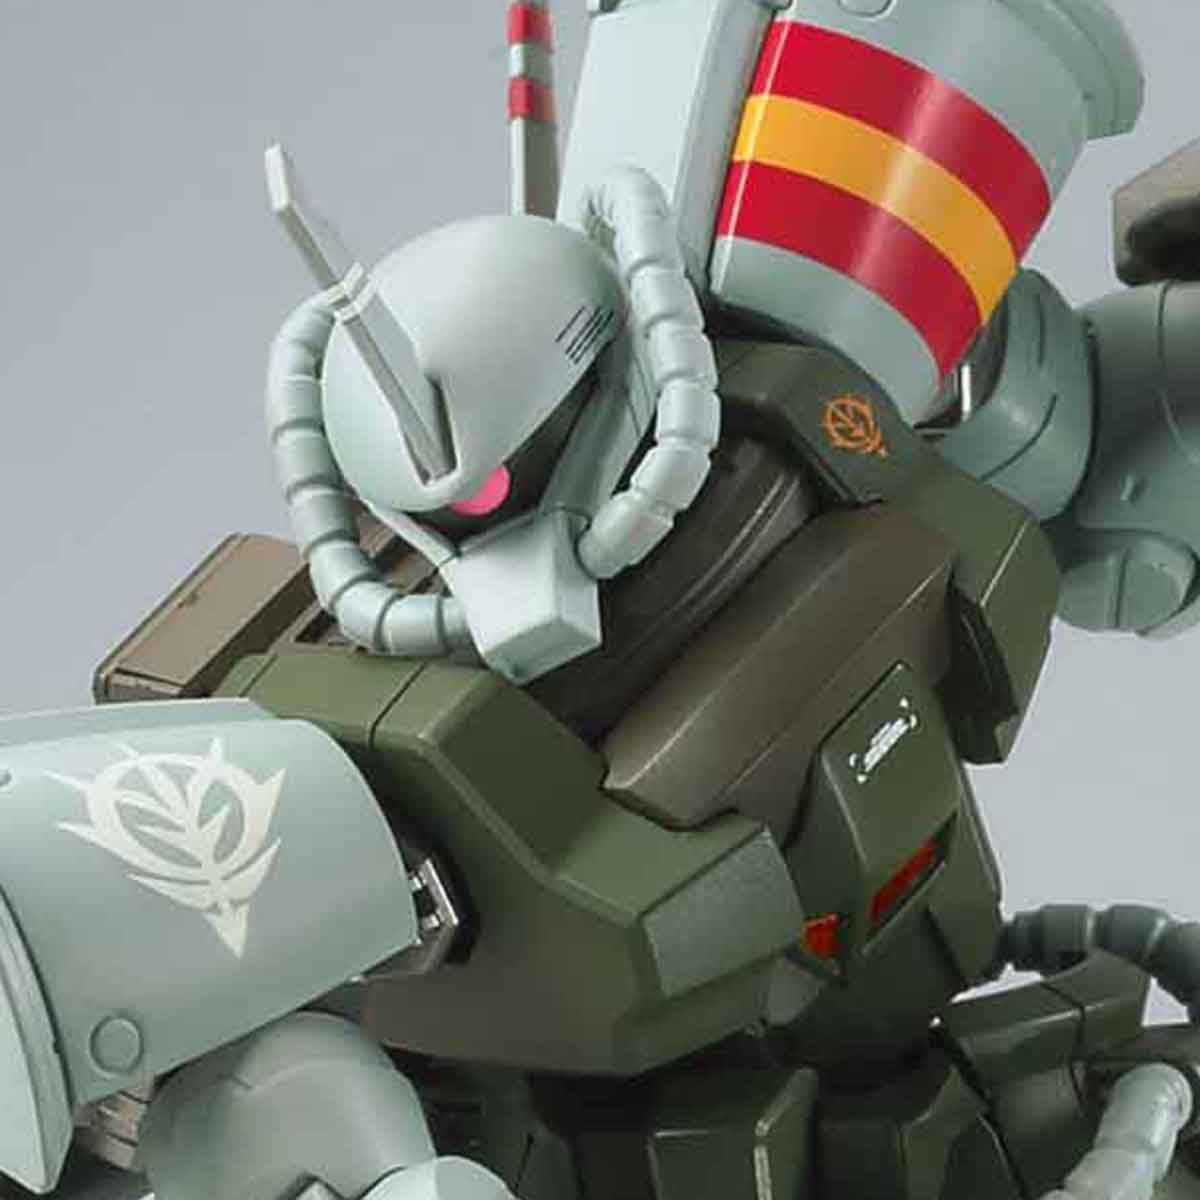 HGUC 1/144 GUNDAM BASE LIMITED GOUF FLIGHT TYPE 21ST CENTURY REAL TYPE VER. [END of JANUARY 2021]